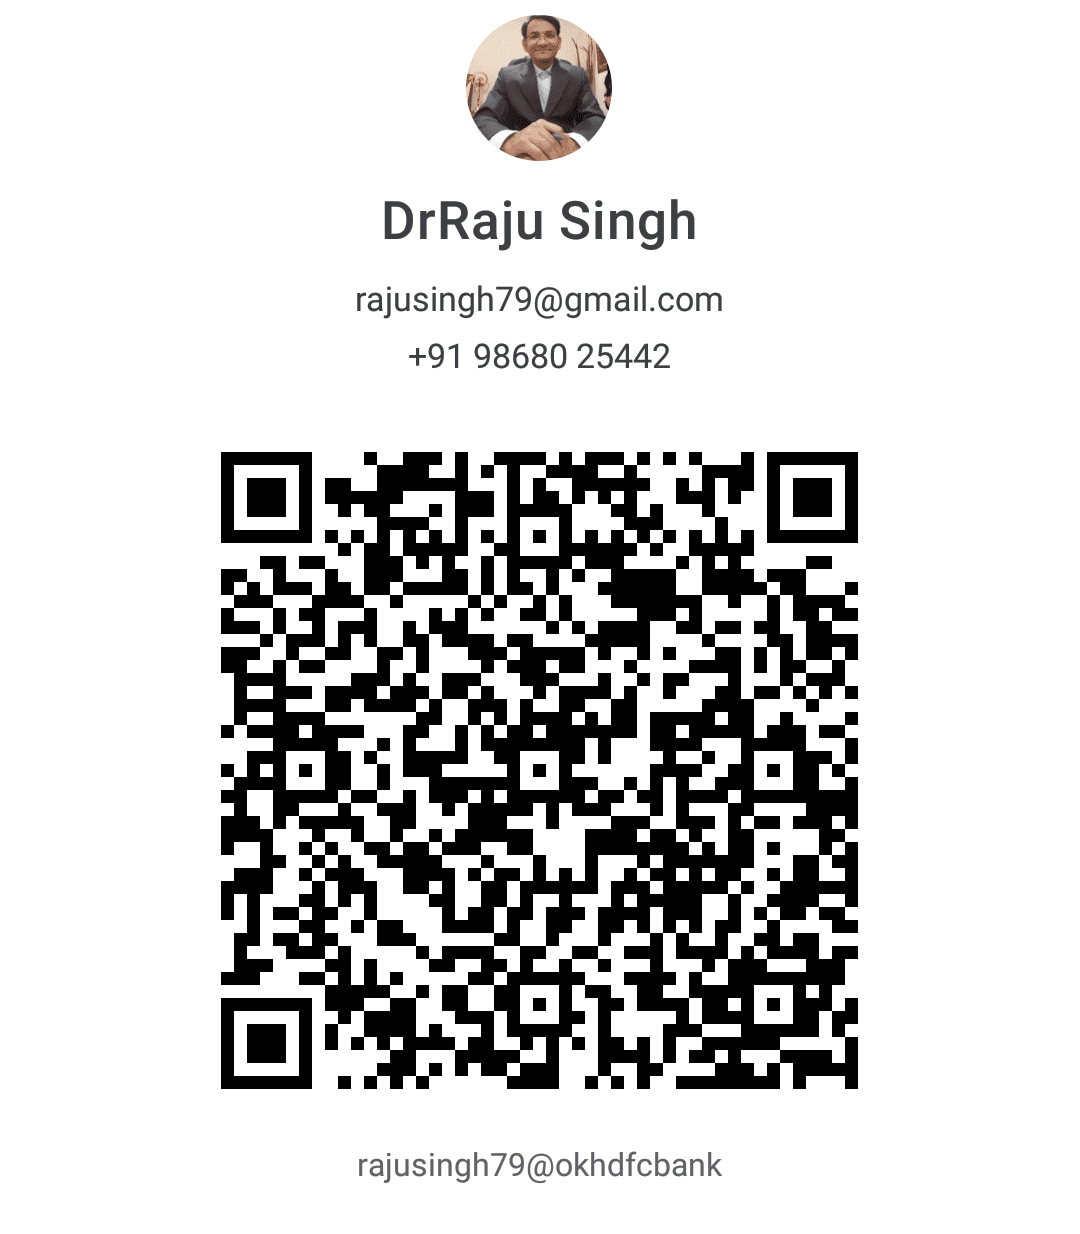 Scan above Google Pay QR Code and Pay to Study innovations